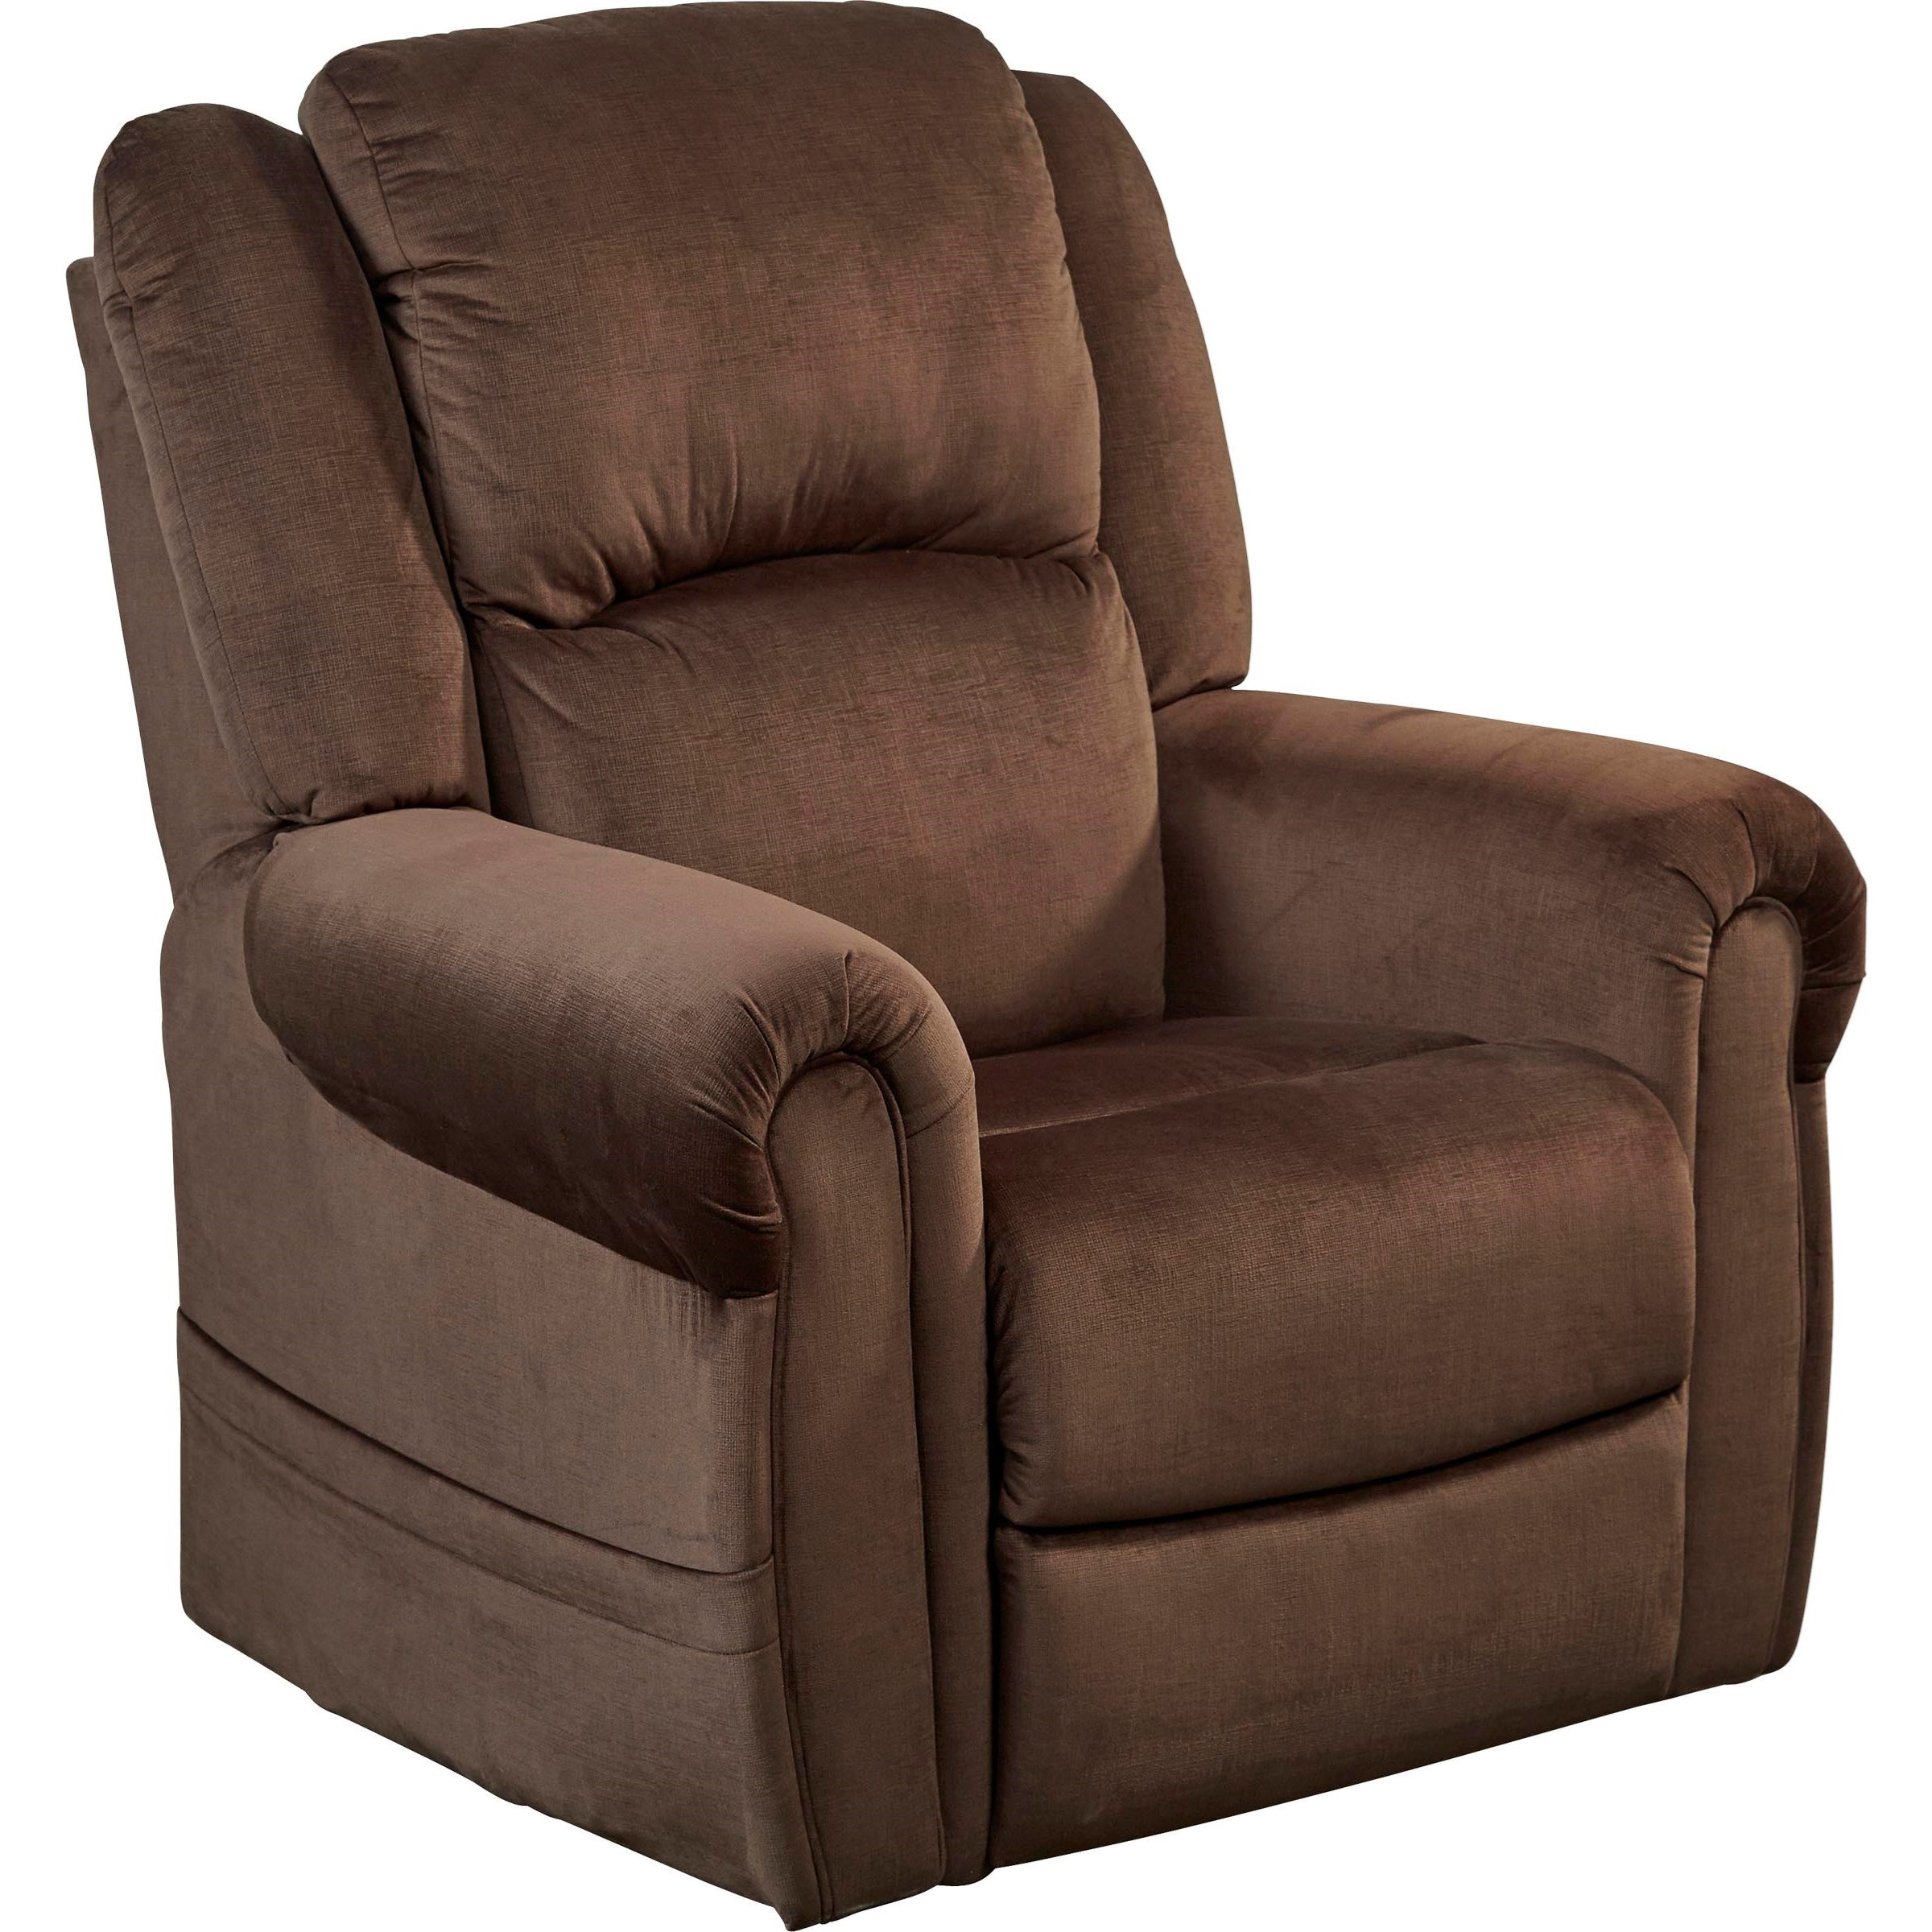 Catnapper Motion Chairs and Recliners Spencer Lift Recliner with Power Headrest - Item Number 4859  sc 1 st  Lindyu0027s Furniture Company & Catnapper Motion Chairs and Recliners Spencer Power Lift Recliner ... islam-shia.org